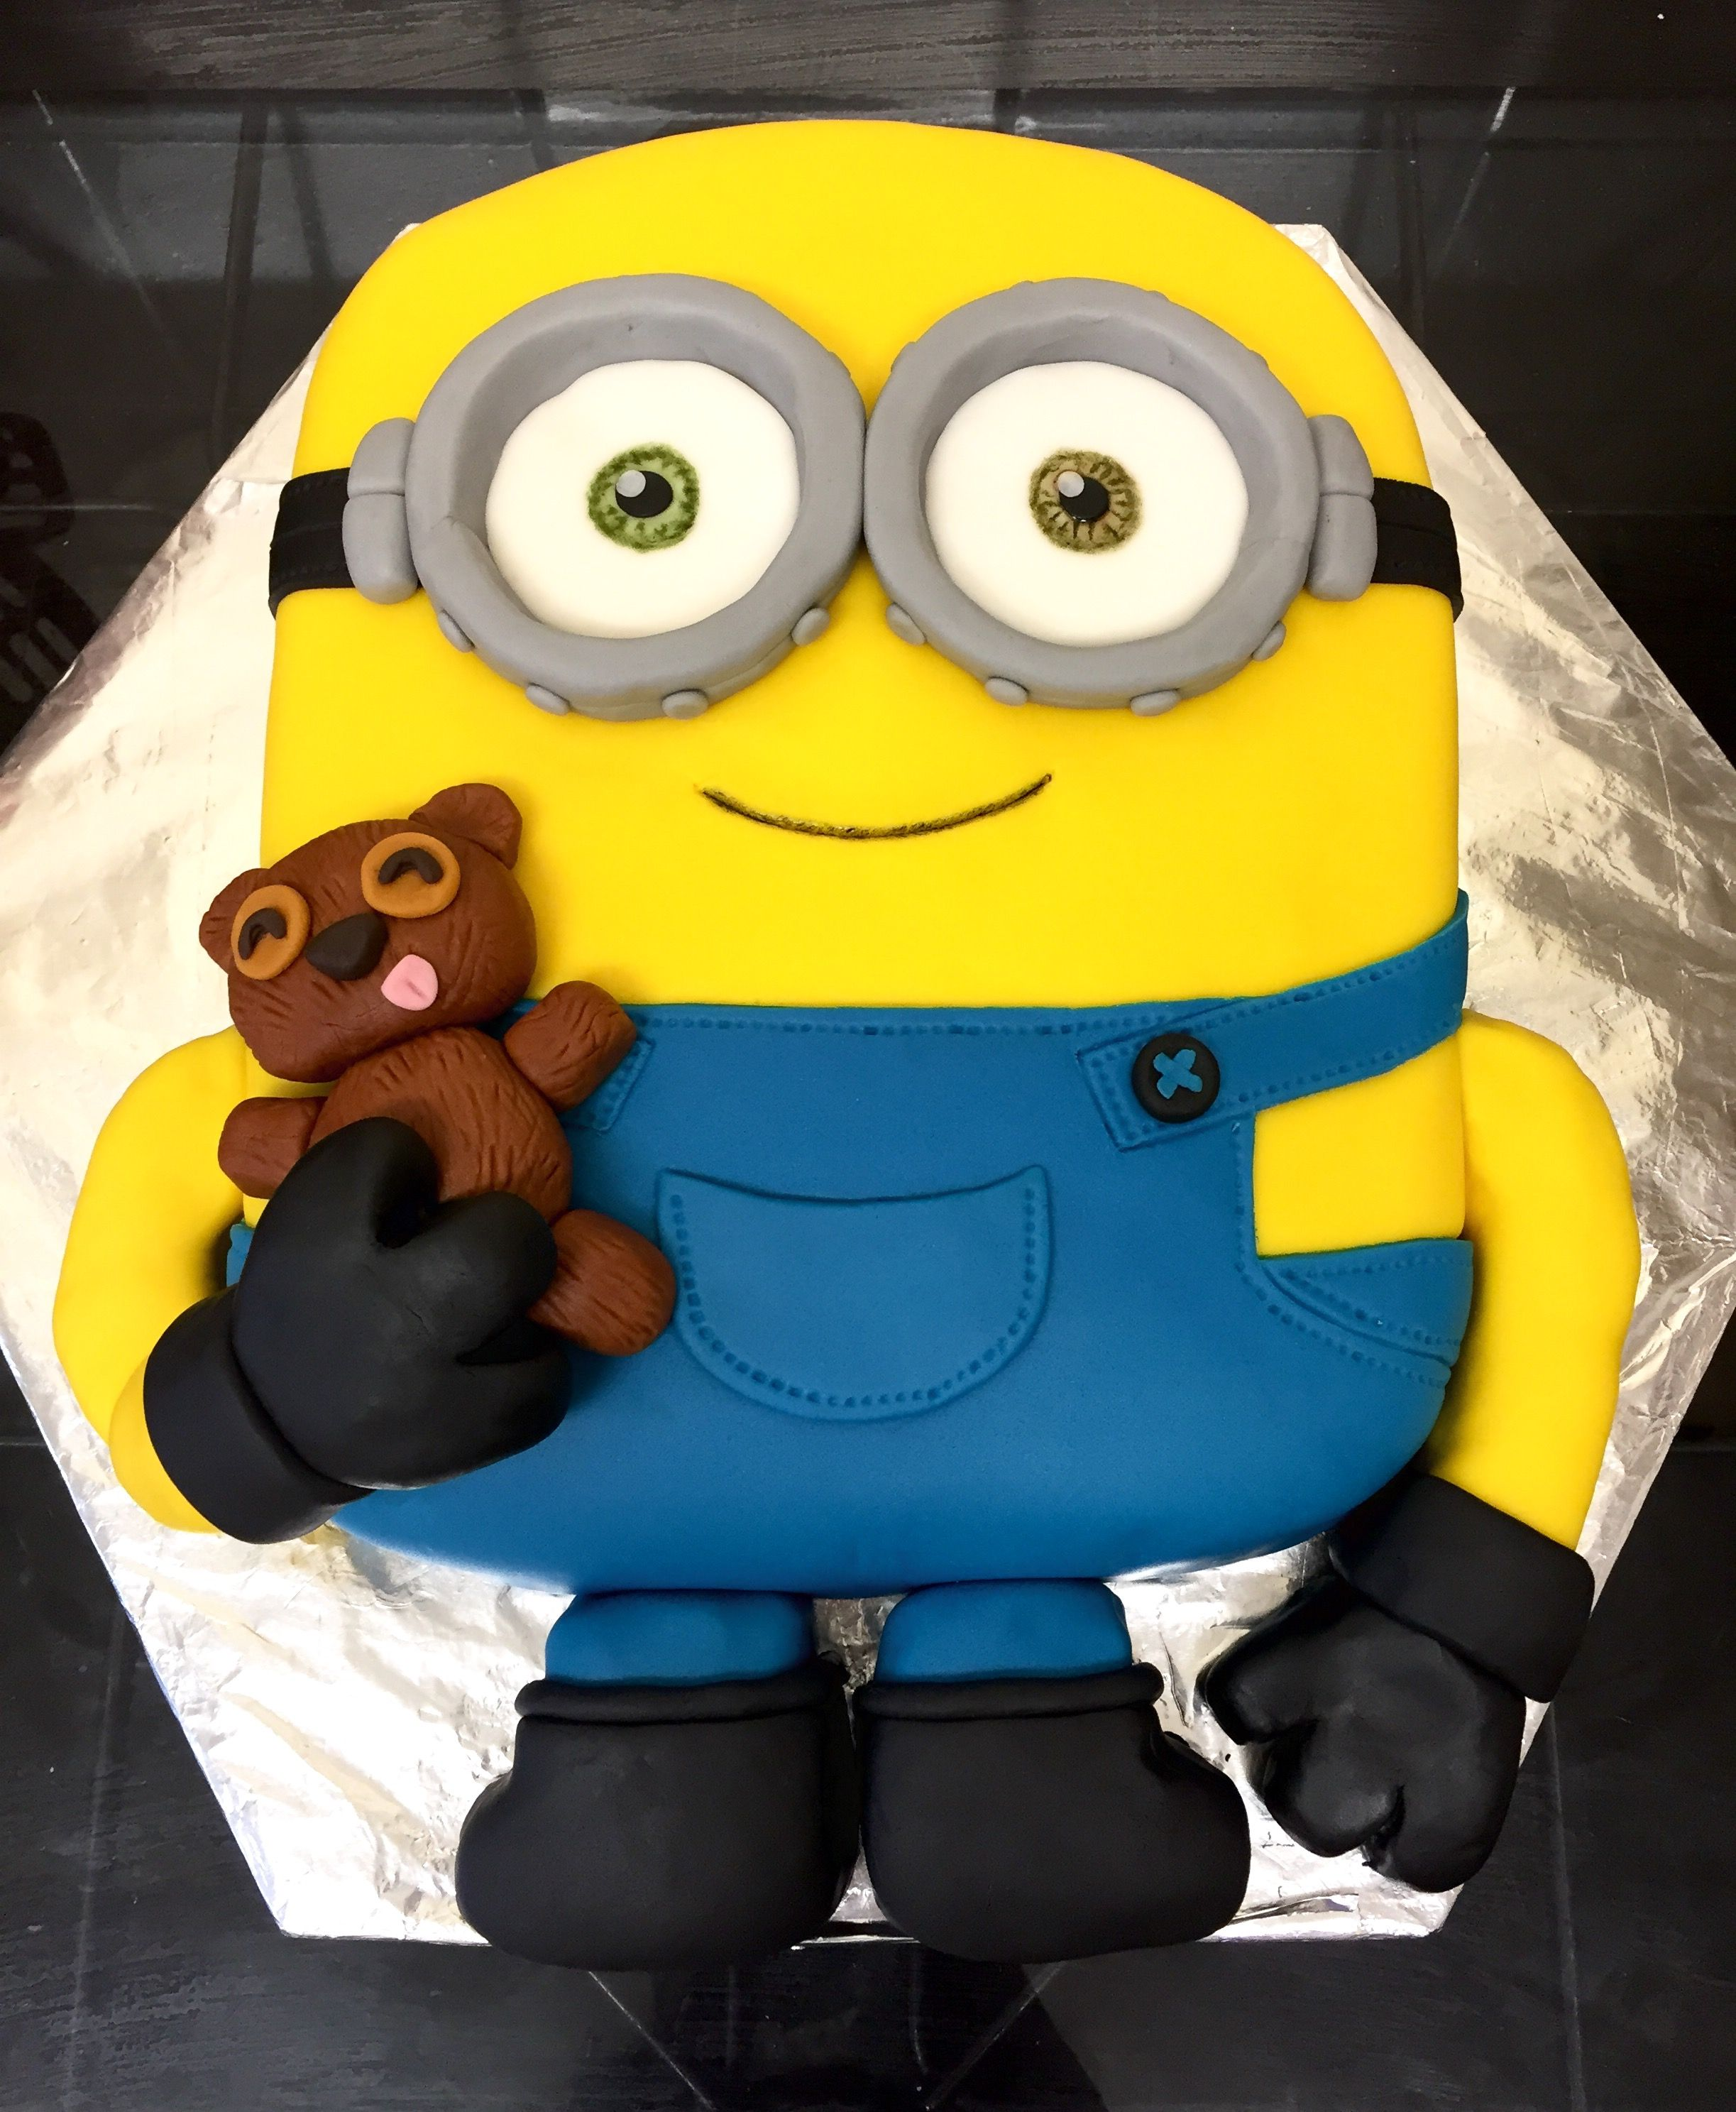 Marvelous Bob The Minion With Teddy Timmy Birthday Cake Minion Birthday Personalised Birthday Cards Paralily Jamesorg